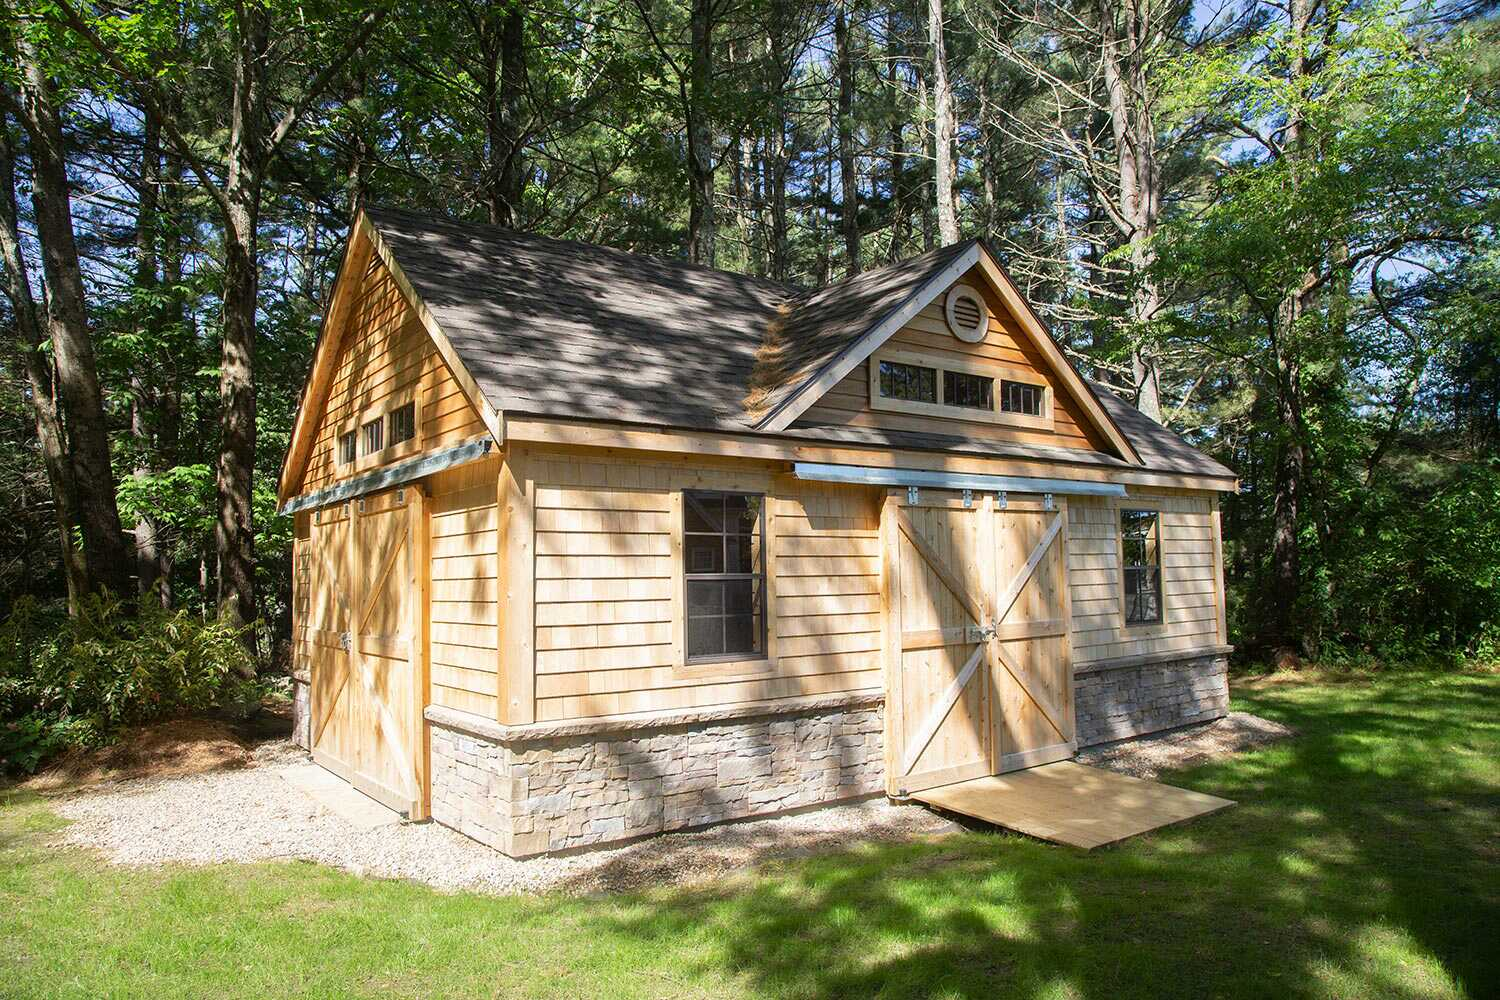 8 Great Uses for Large Sheds